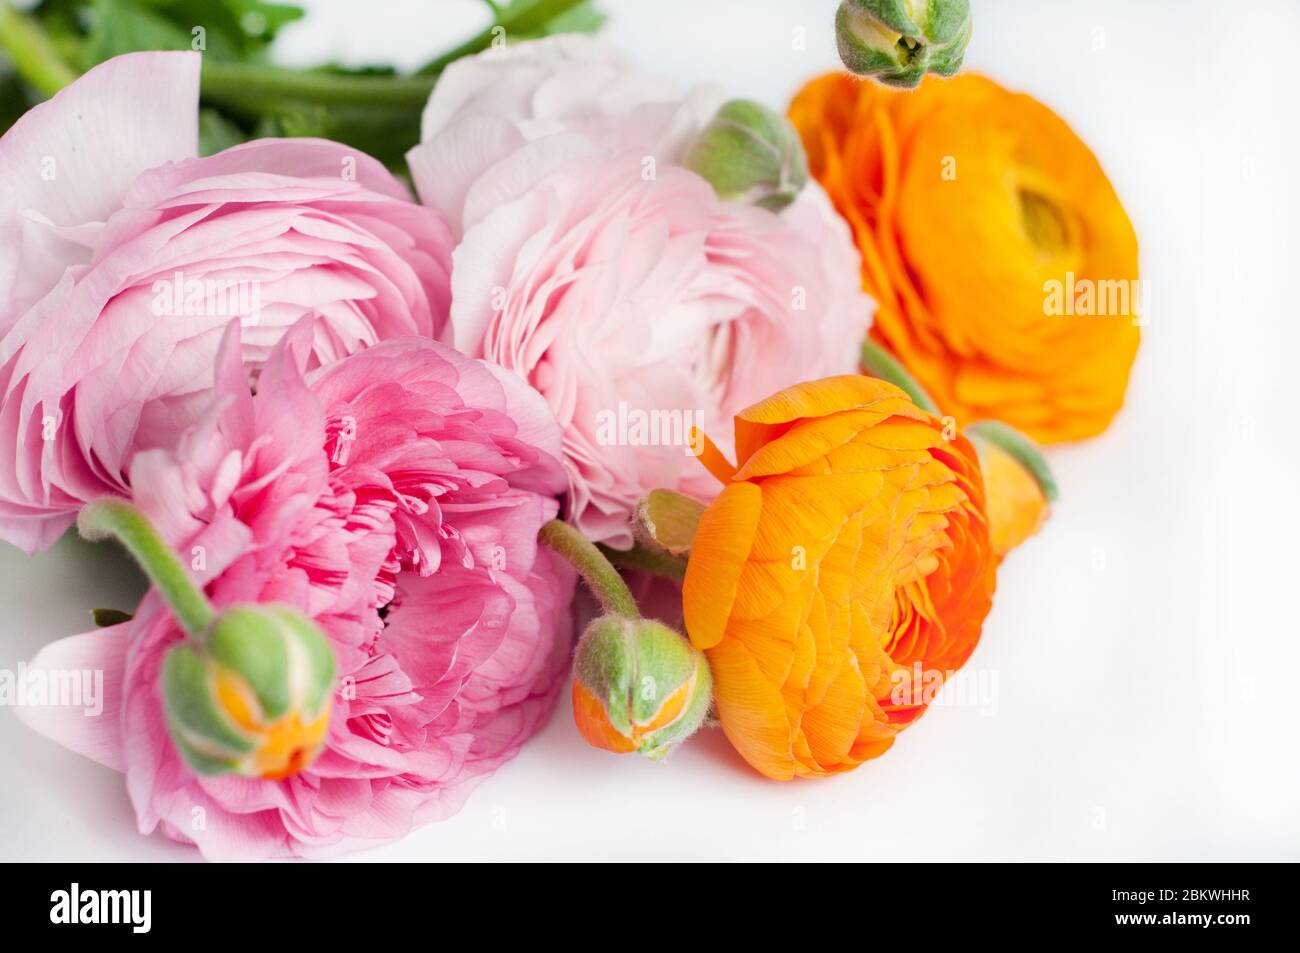 Beautiful Bouquet Of Ranunculus Flowers Of Orange And Pink Color On A White Background Flowers And Buds Copy Space For Text Stock Photo Alamy